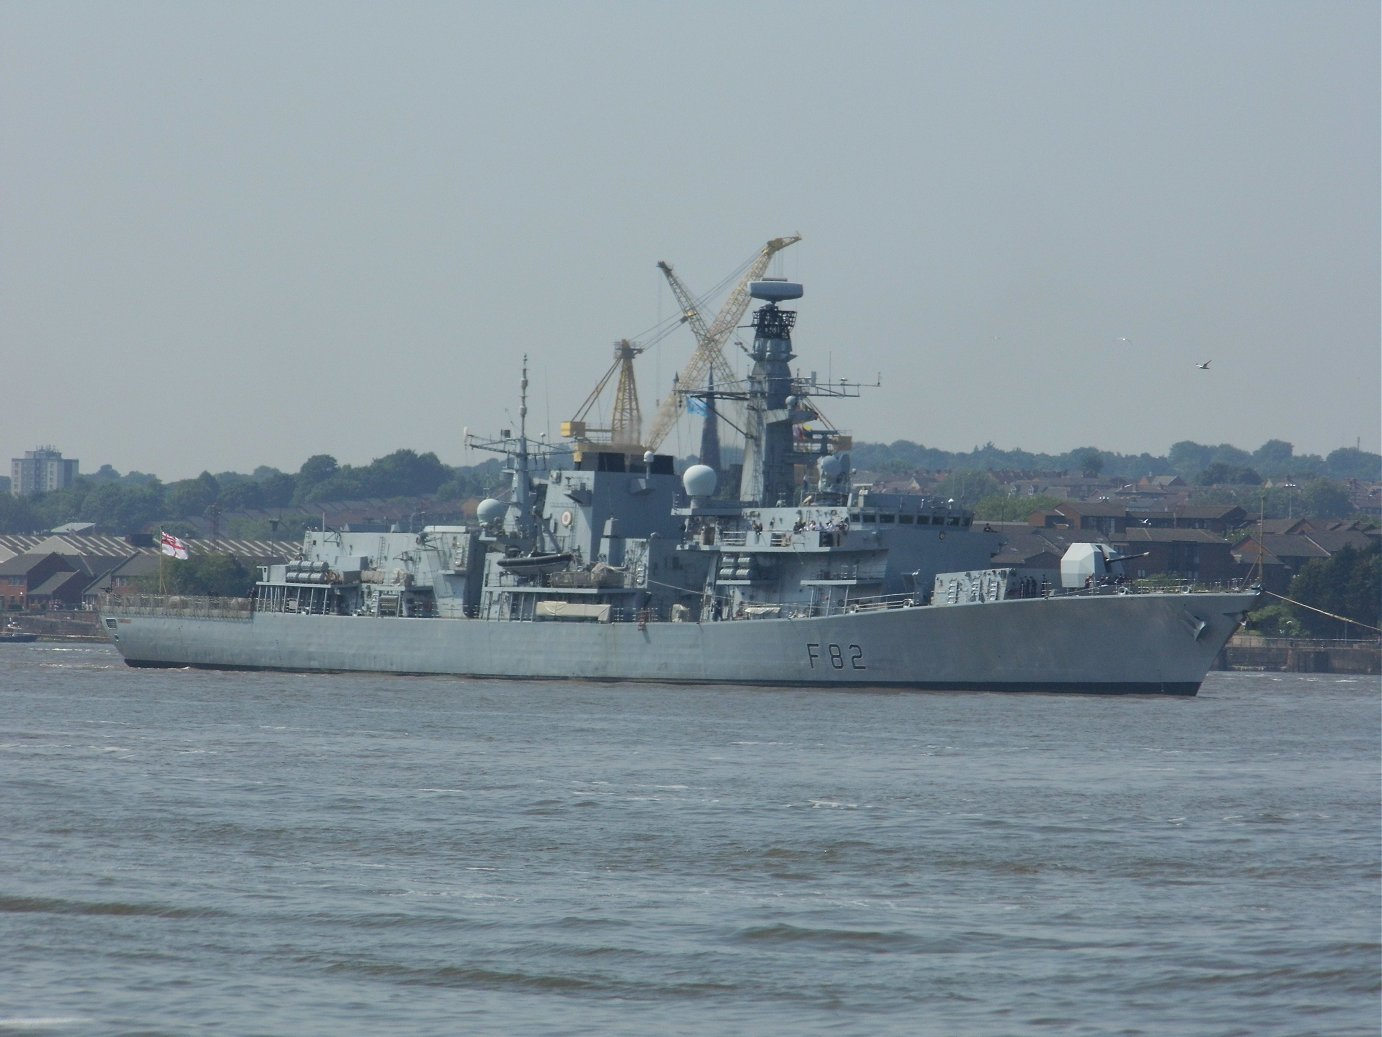 Type 23 frigate H.M.S. Somerset at Liverpool, May 28th 2018